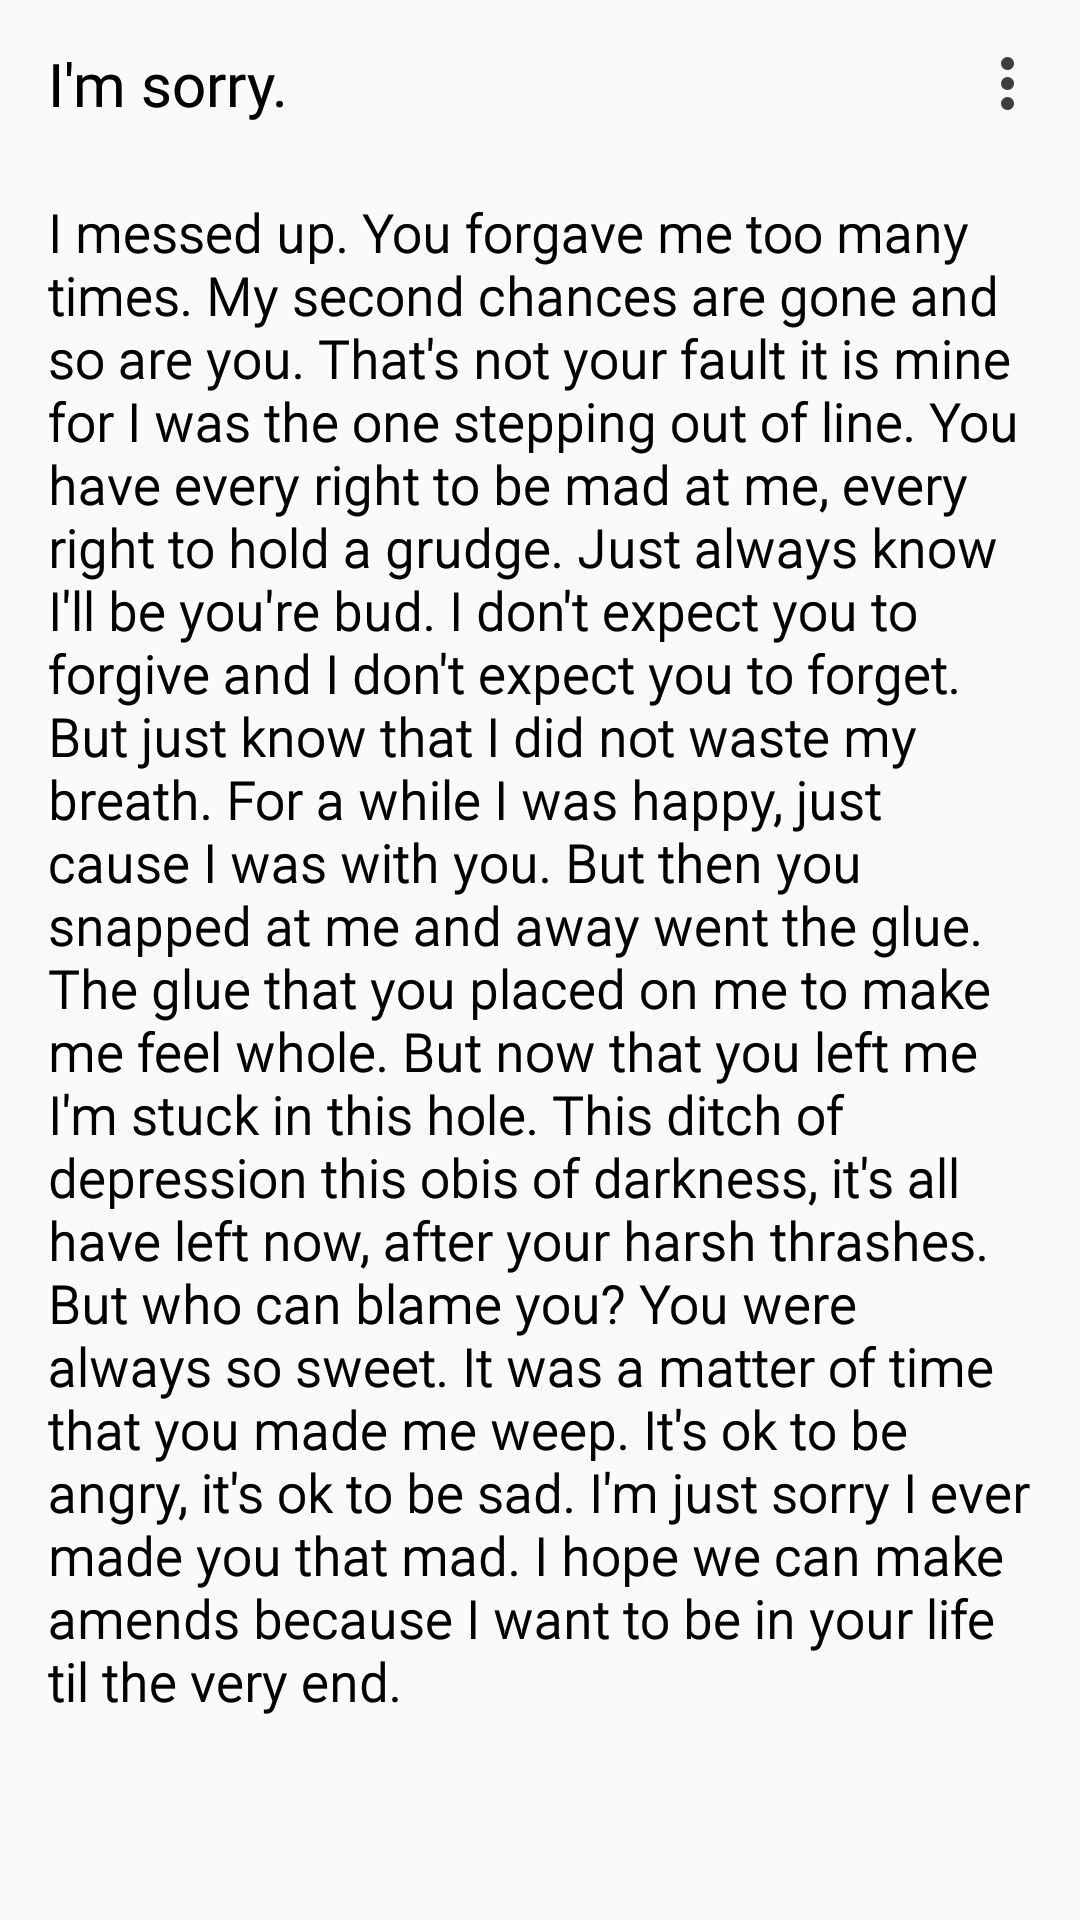 I wrote this poem for my best friend. I'm really sorry for being